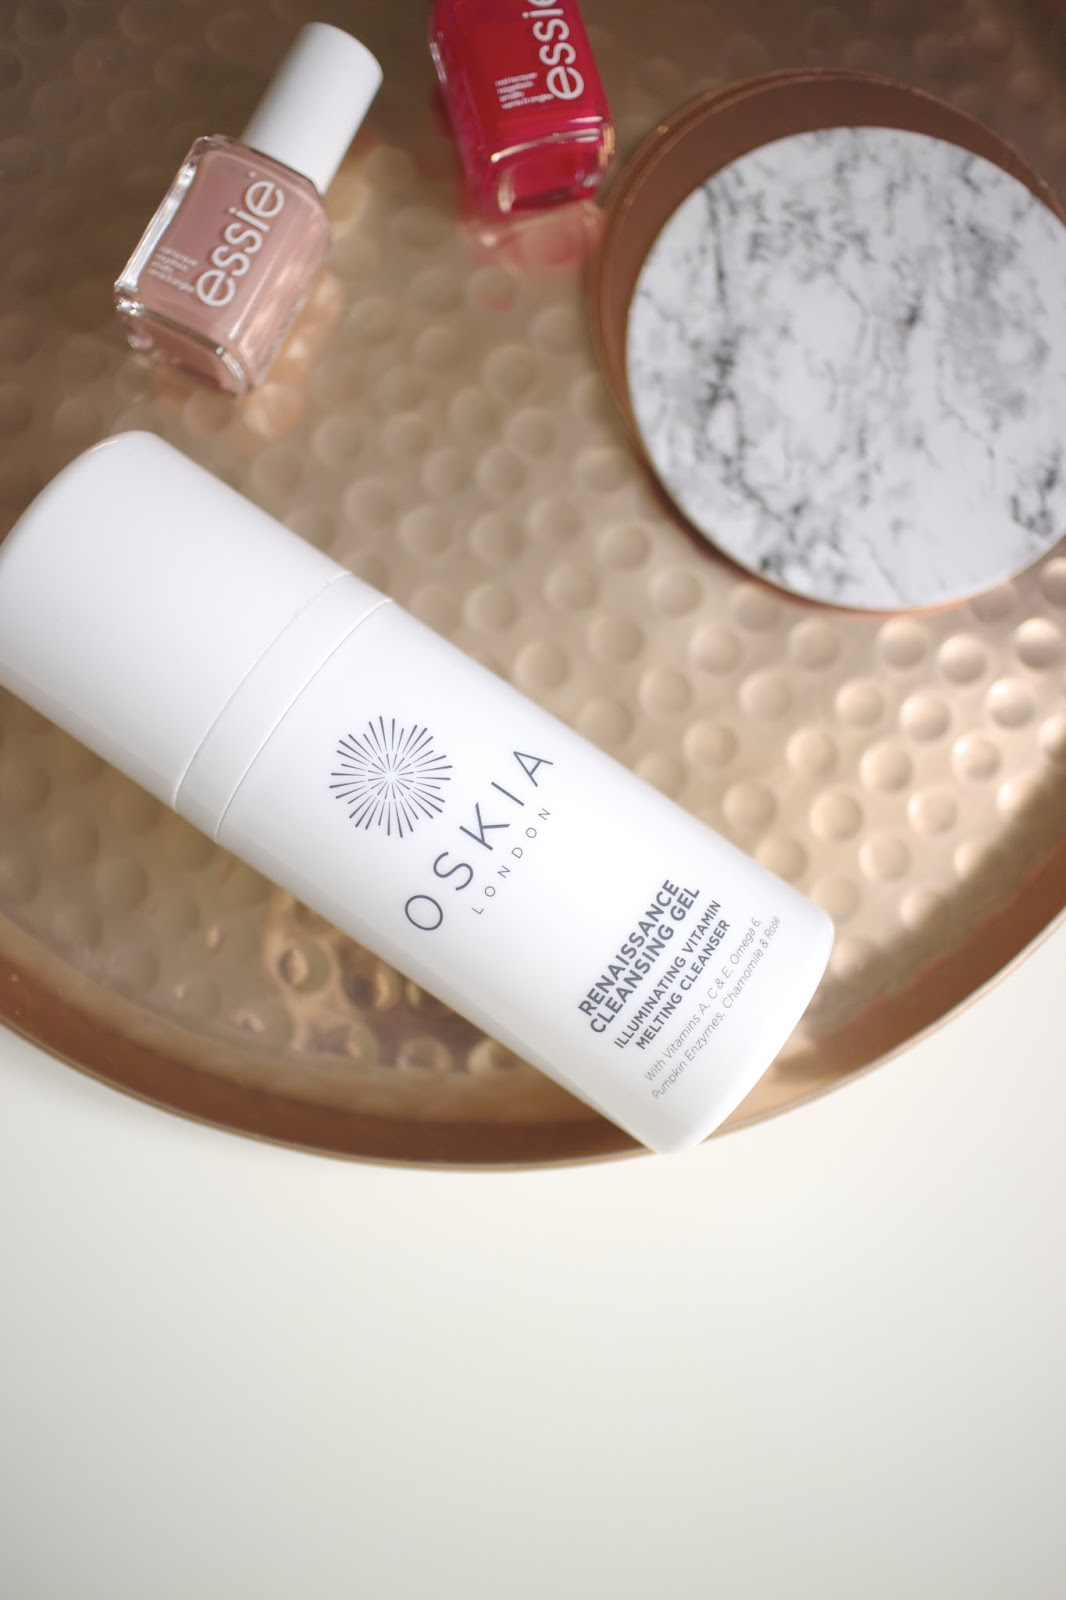 She's So Lucy Oskia Renaissance Cleansing Gel Review